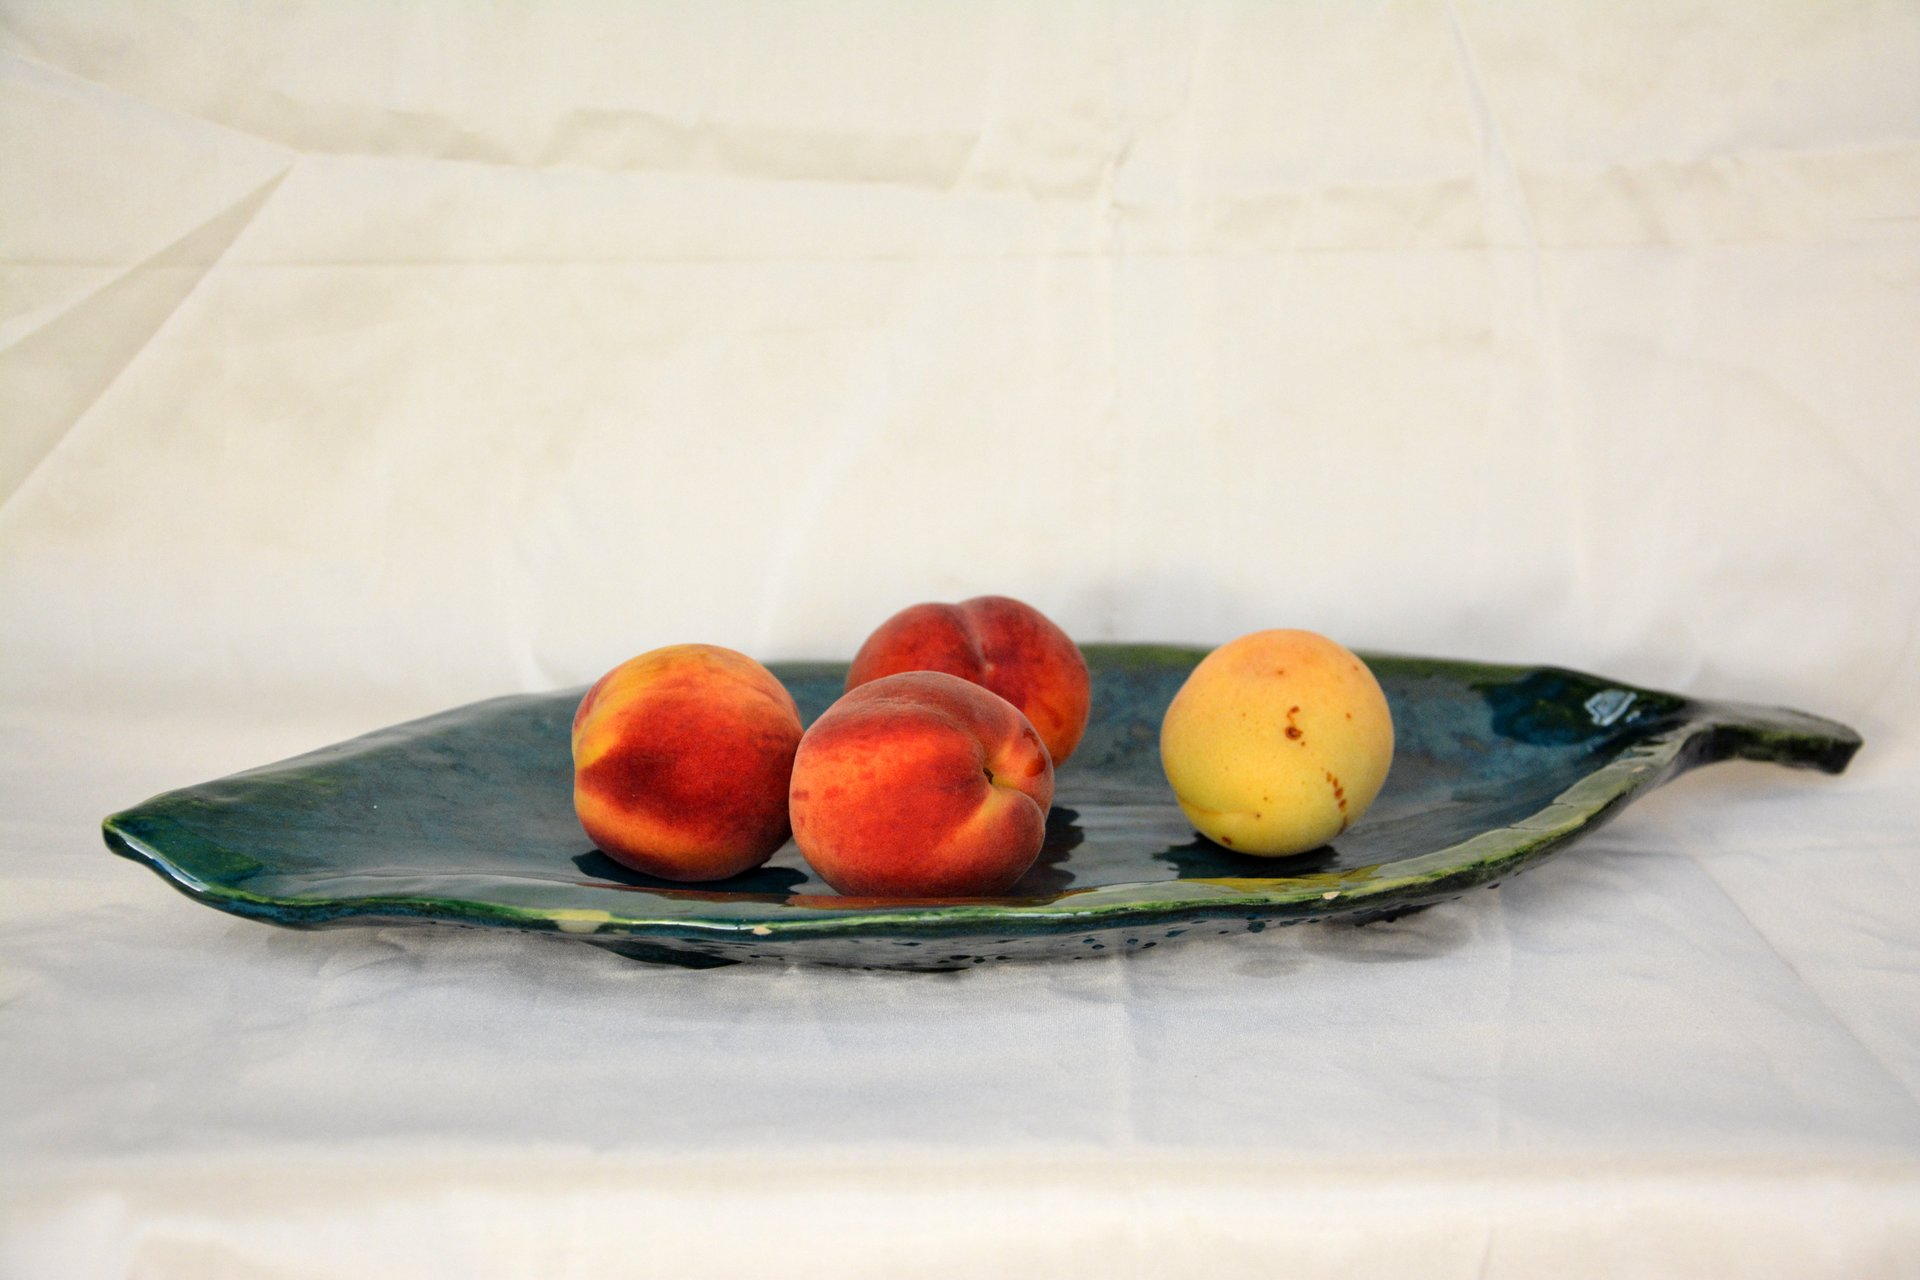 Fruit dish Leaf - Ceramic dishes, 46 * 23 cm, photo 2 of 3.